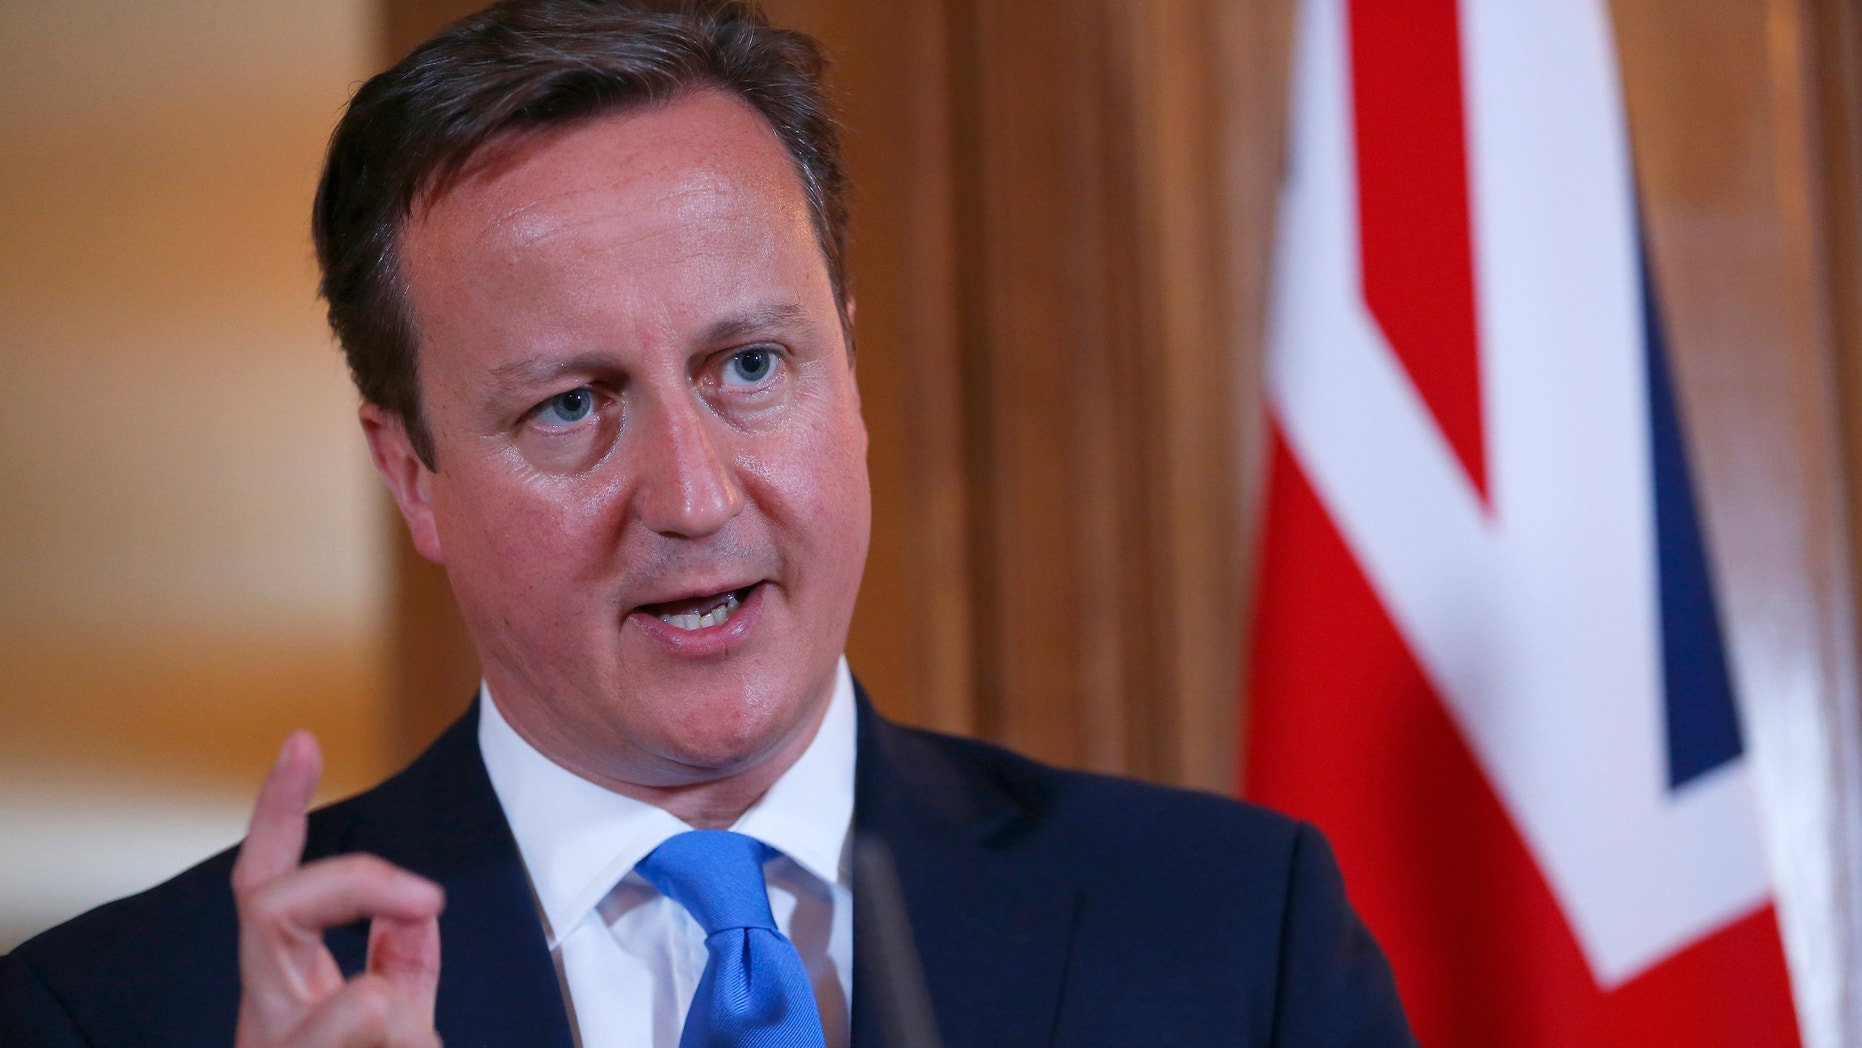 July 17, 2013 - FILE pf Britain's Prime Minister David Cameron answering a question during a joint news conference with Italy's Prime Minister Enrico Letta at 10 Downing Street in central London.